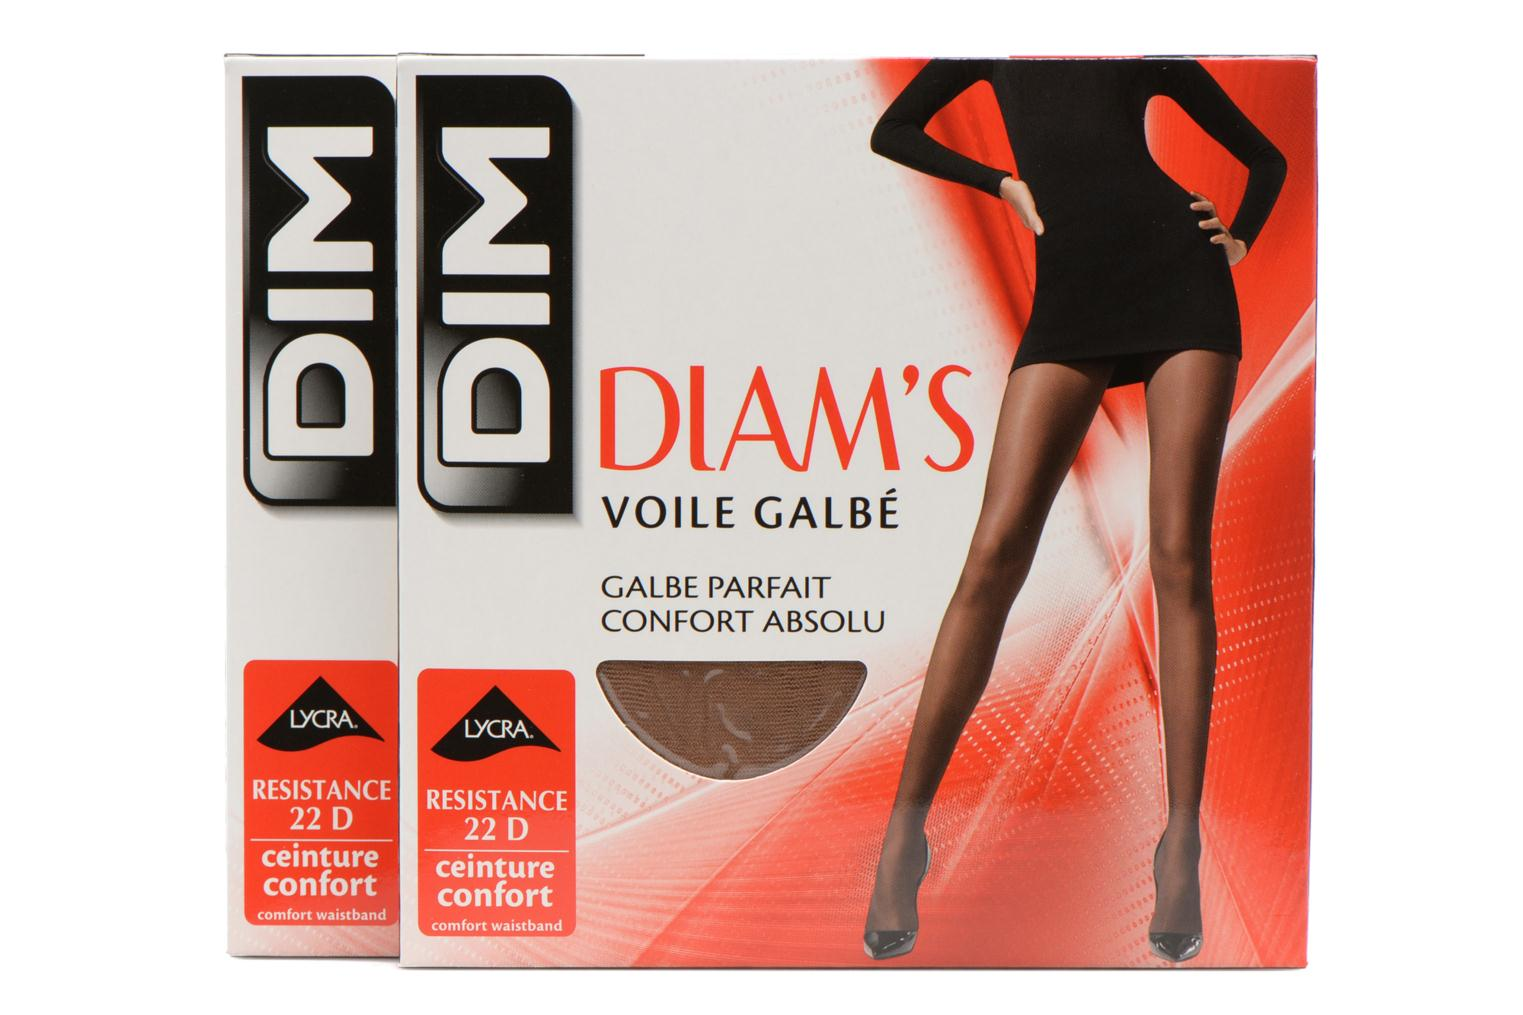 Tights DIAM'S VOILE GALBE Pack of 2 Jour